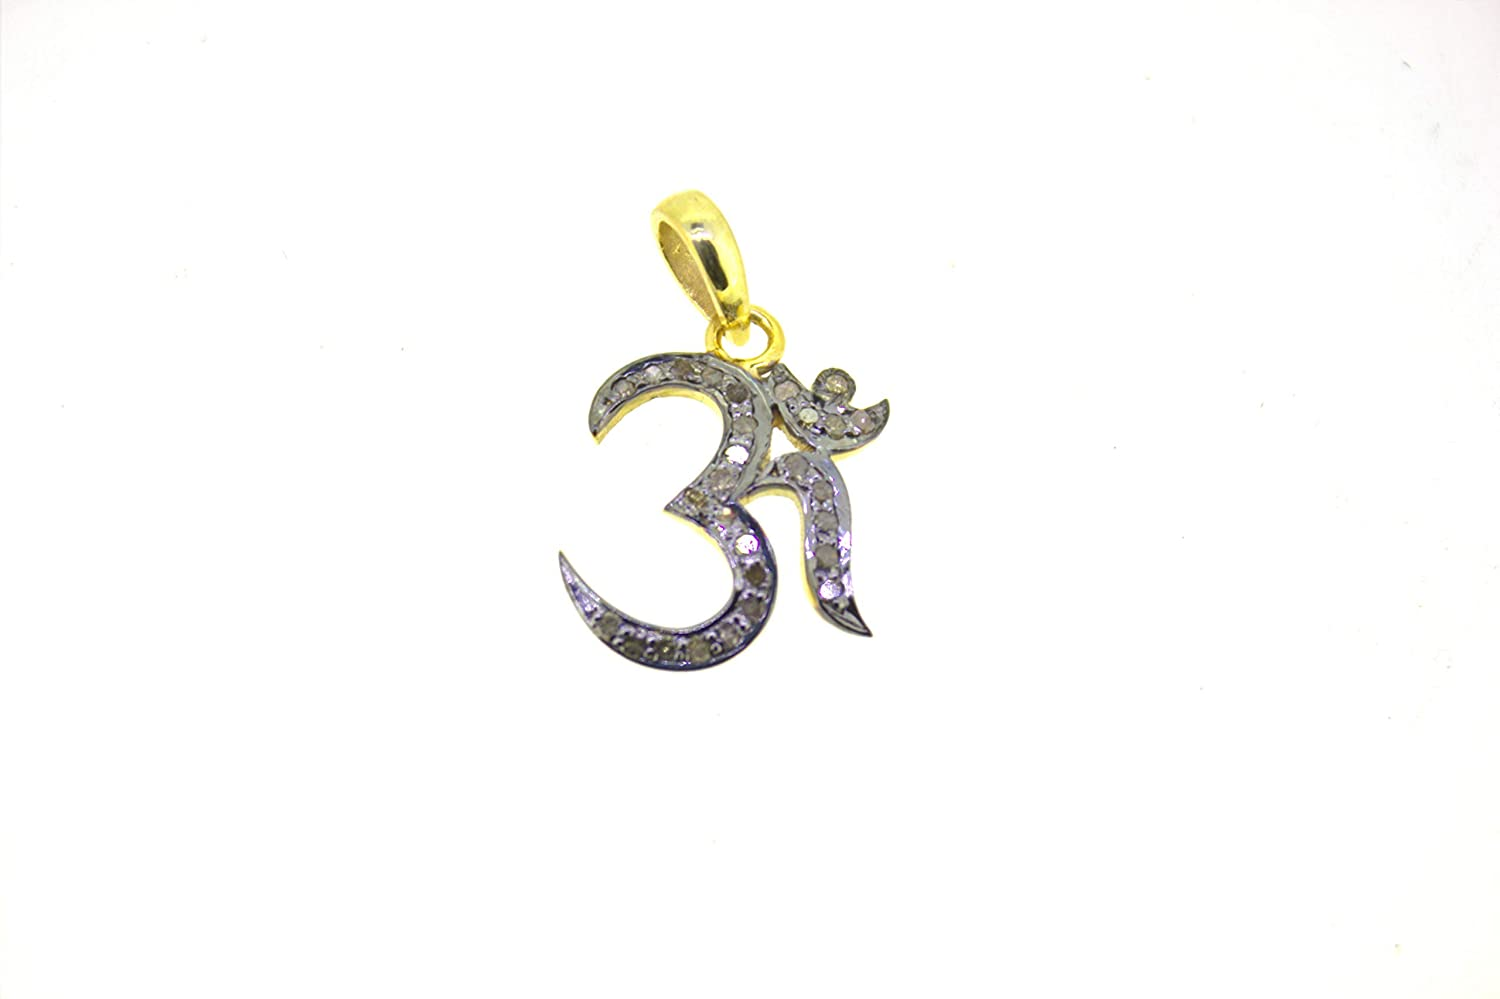 1 Pc Pave Diamond Om Symbol Over 925 Sterling Silver Charm Pendant Ohm Pendant 19mmx15mm PDC1202